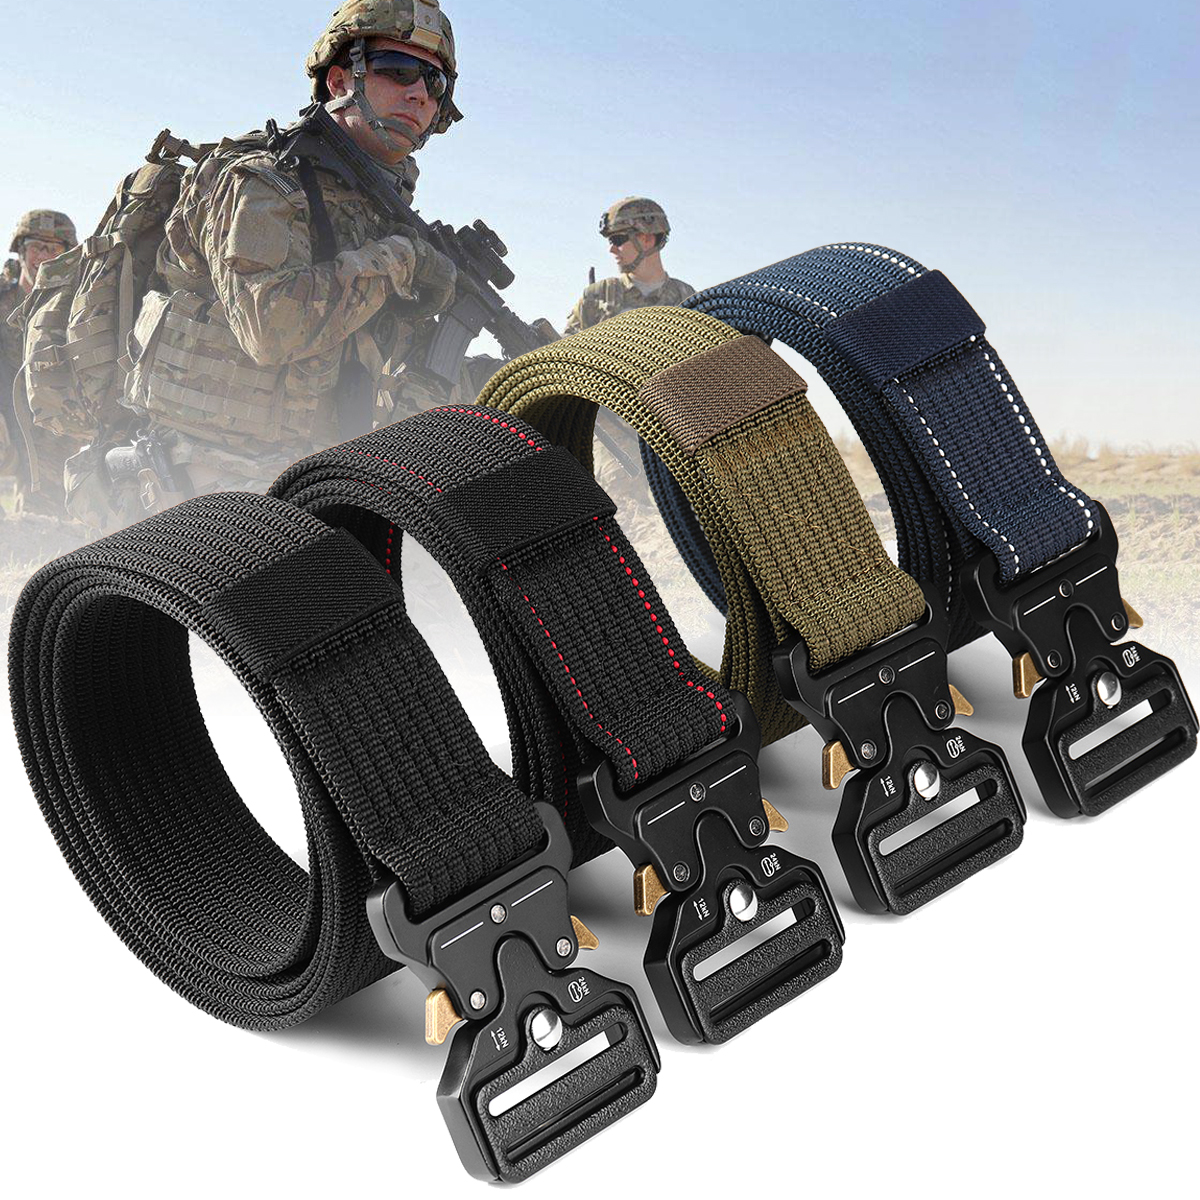 Survival Military Belts For Men Tactical Nylon Belt with Metal Buckle